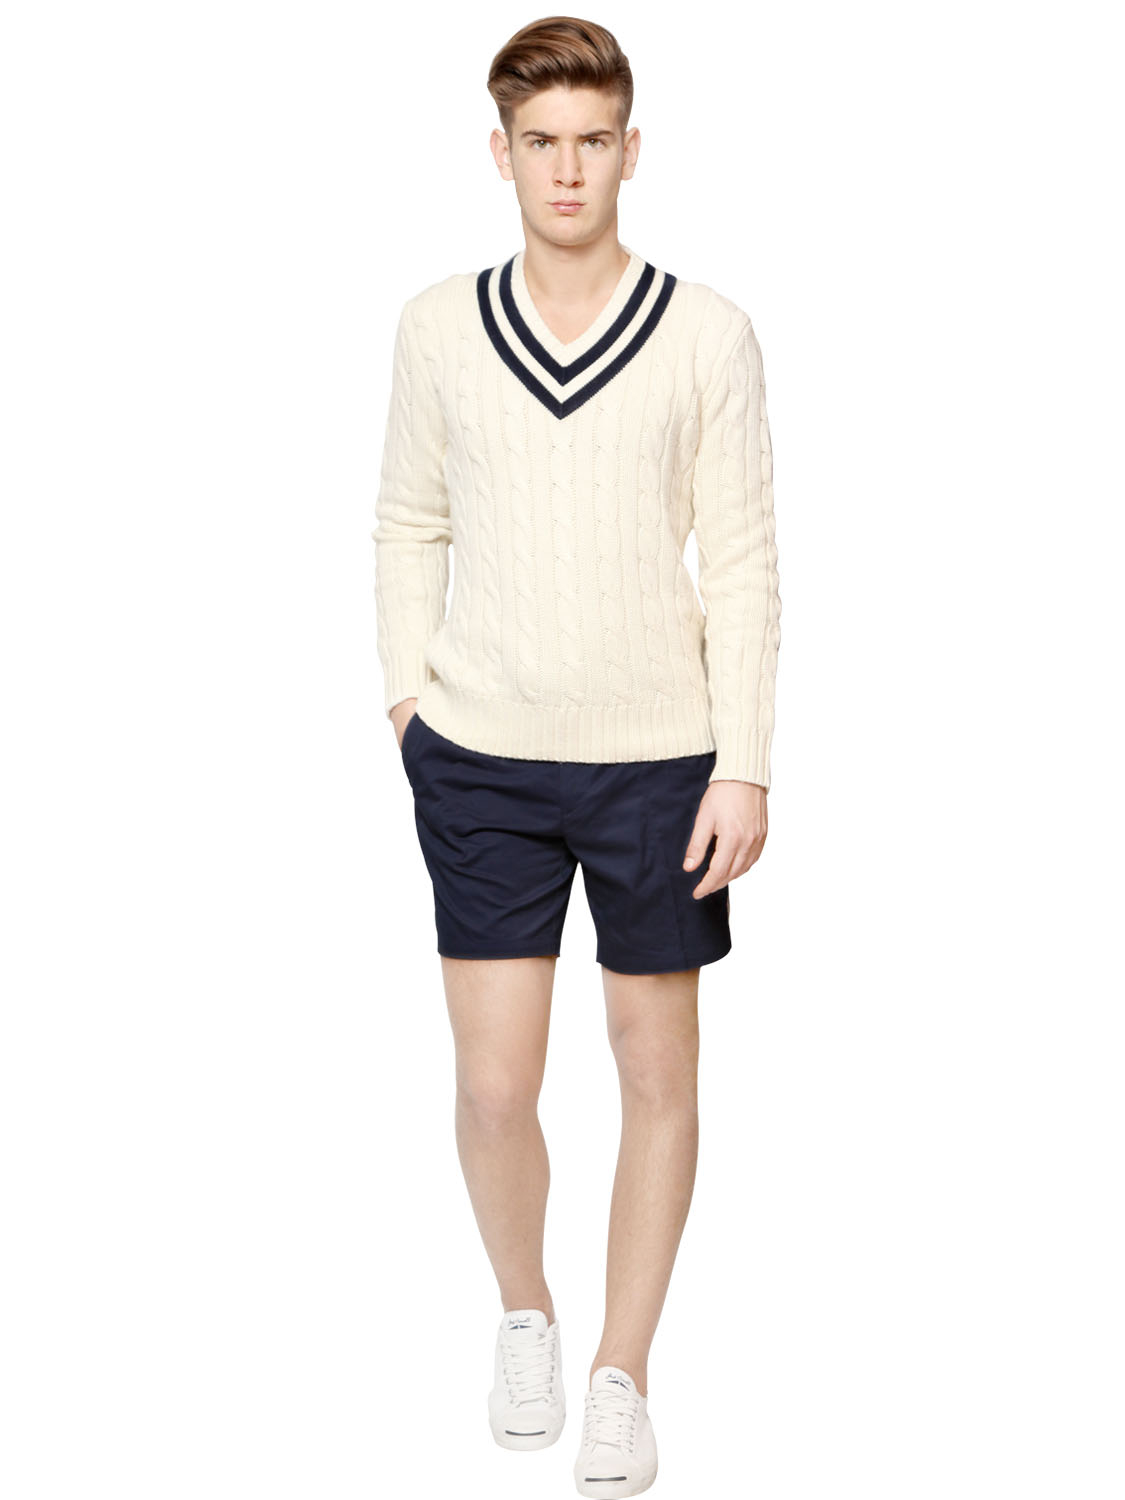 Polo ralph lauren Official Wimbledon Cotton Blend Sweater in Blue for Men (MILK/NAVY